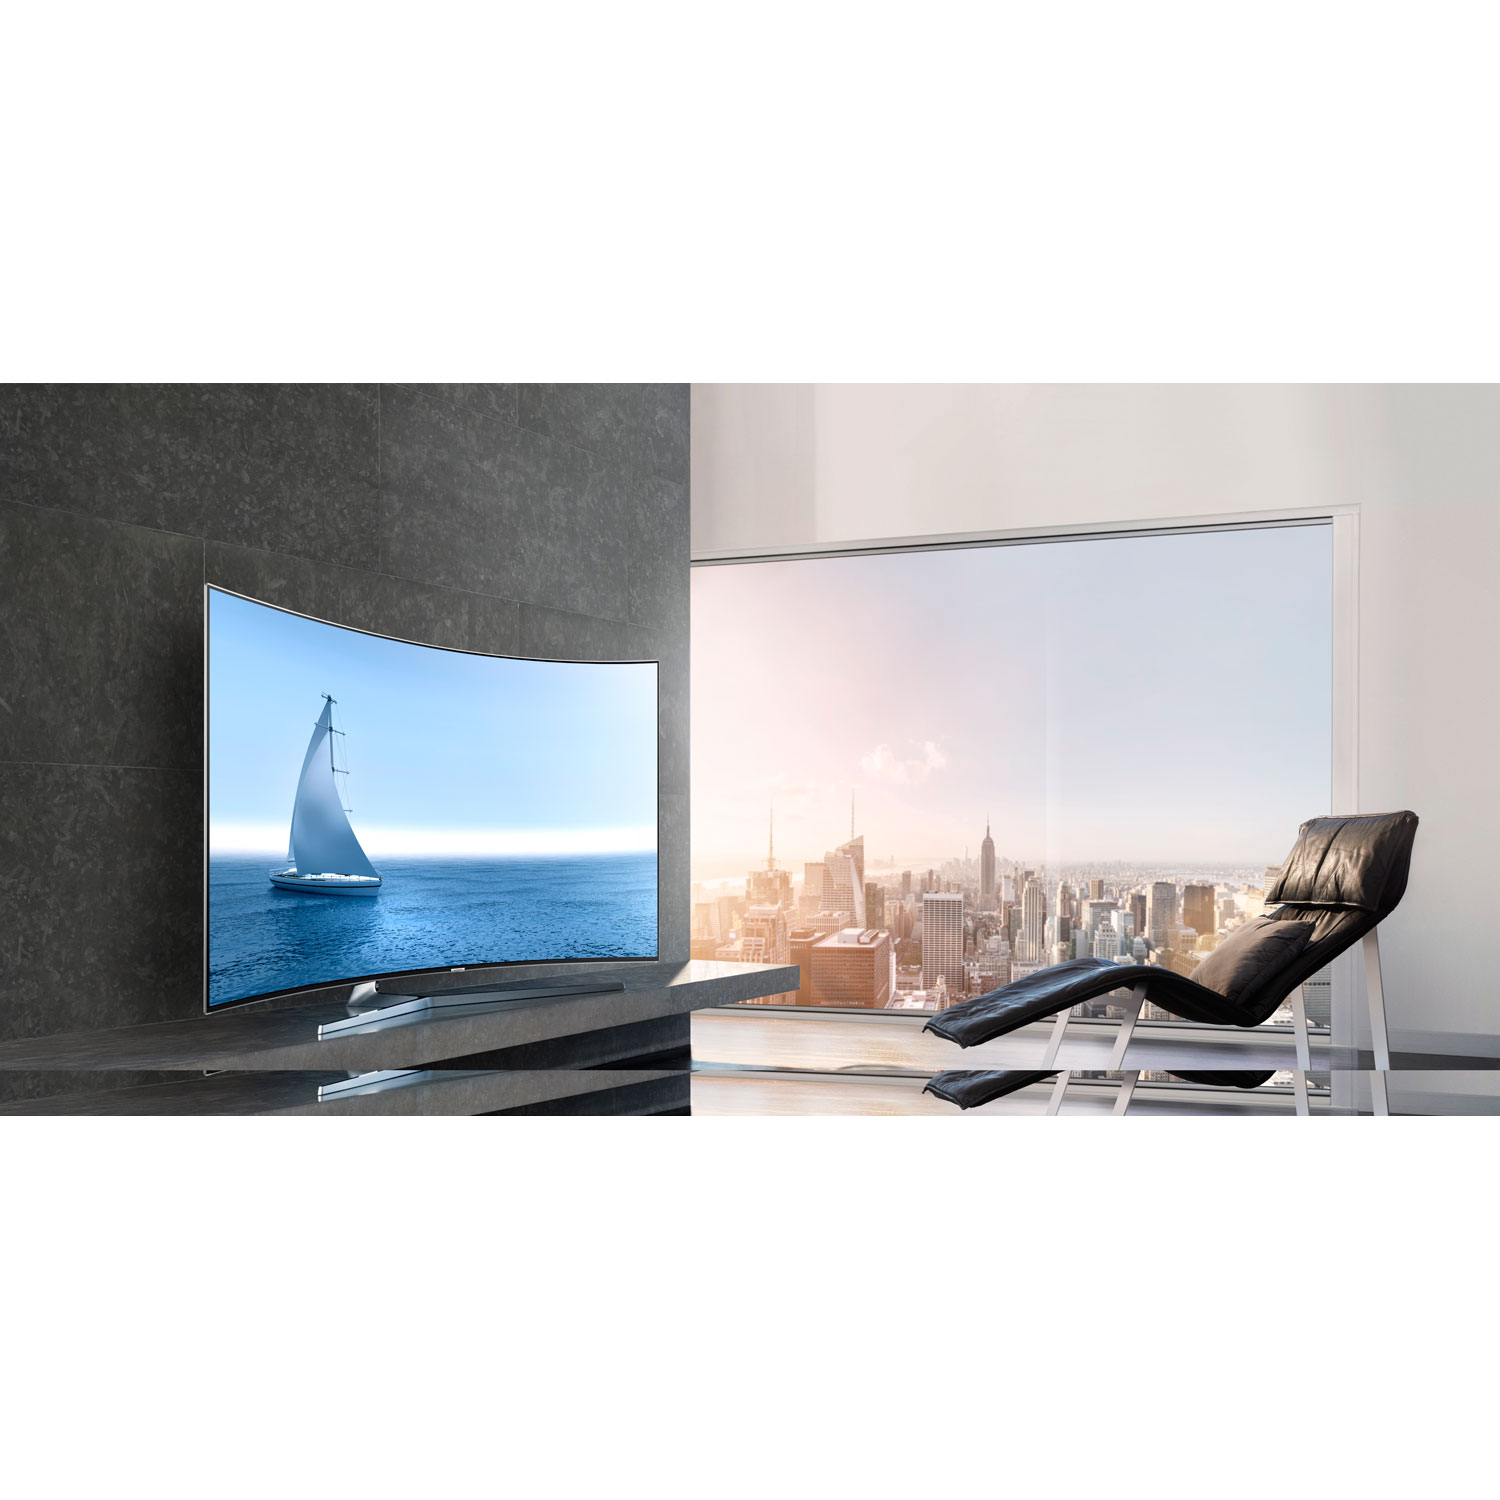 samsung un65ks9500 curved 65 inch 2160p smart 4k suhd led tv ks9500 9 series 887276139470 ebay. Black Bedroom Furniture Sets. Home Design Ideas